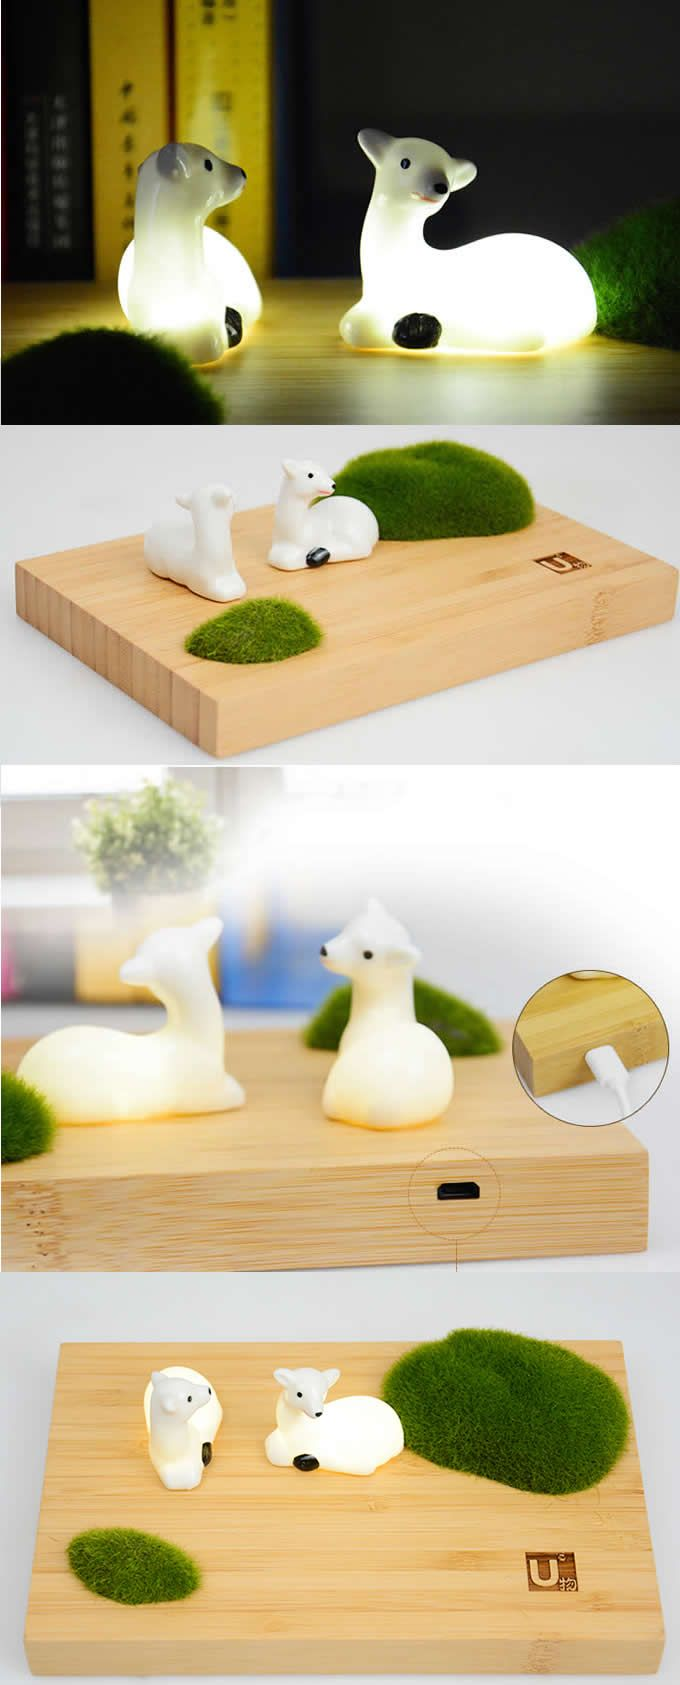 Best 25+ Led desk lamp ideas on Pinterest | Led desk light, Desk ...